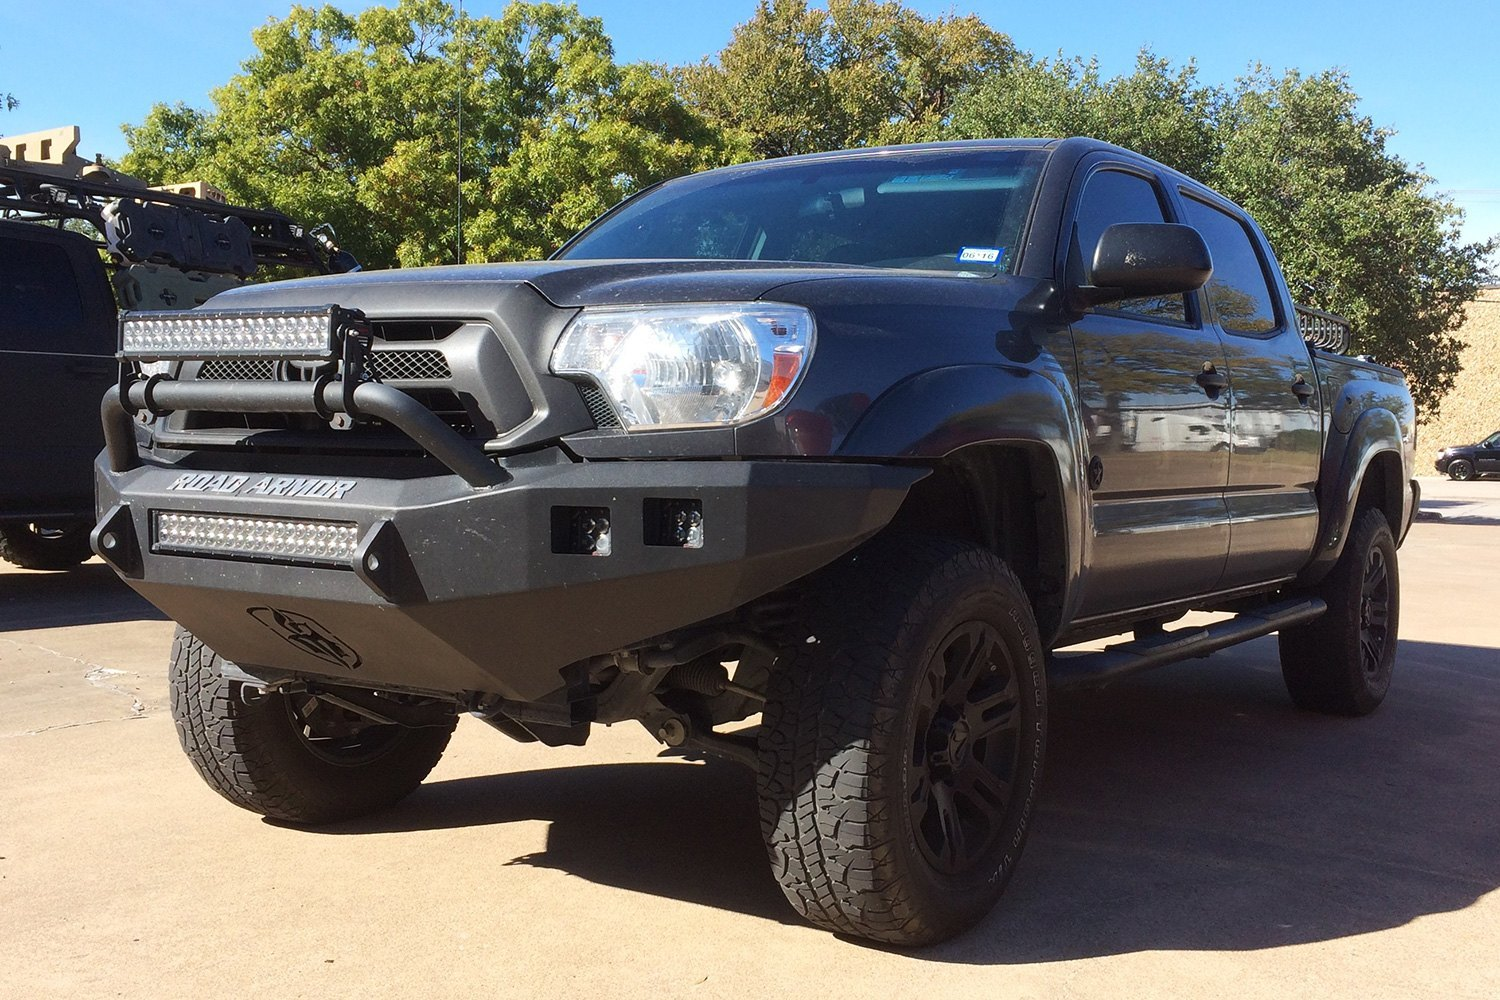 road armor toyota tacoma 2015 stealth series full width front hd bumper with pre runner guard. Black Bedroom Furniture Sets. Home Design Ideas